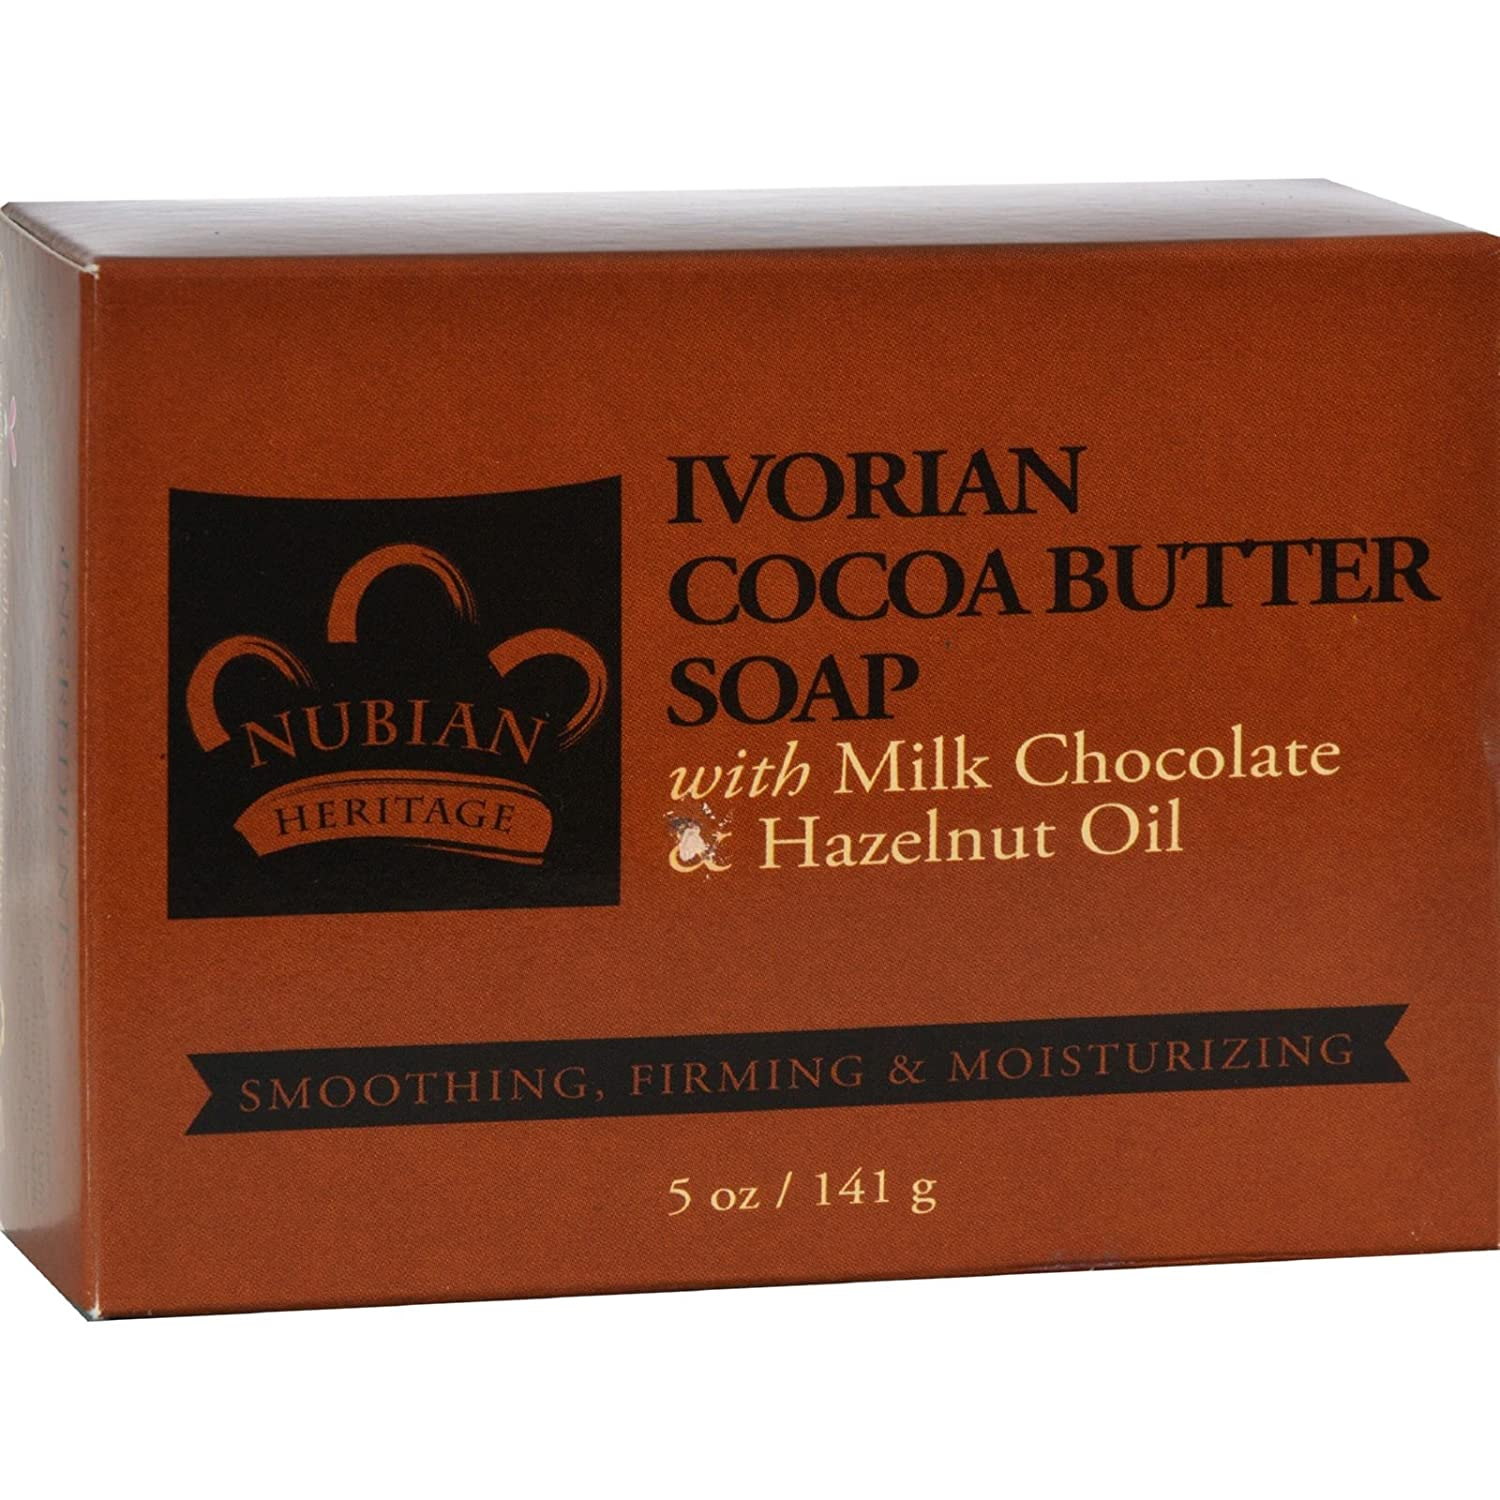 Nubian Ivorian Coco/Butter Soap 5 oz. (Pack of 6) UNFI - Select Nutrition